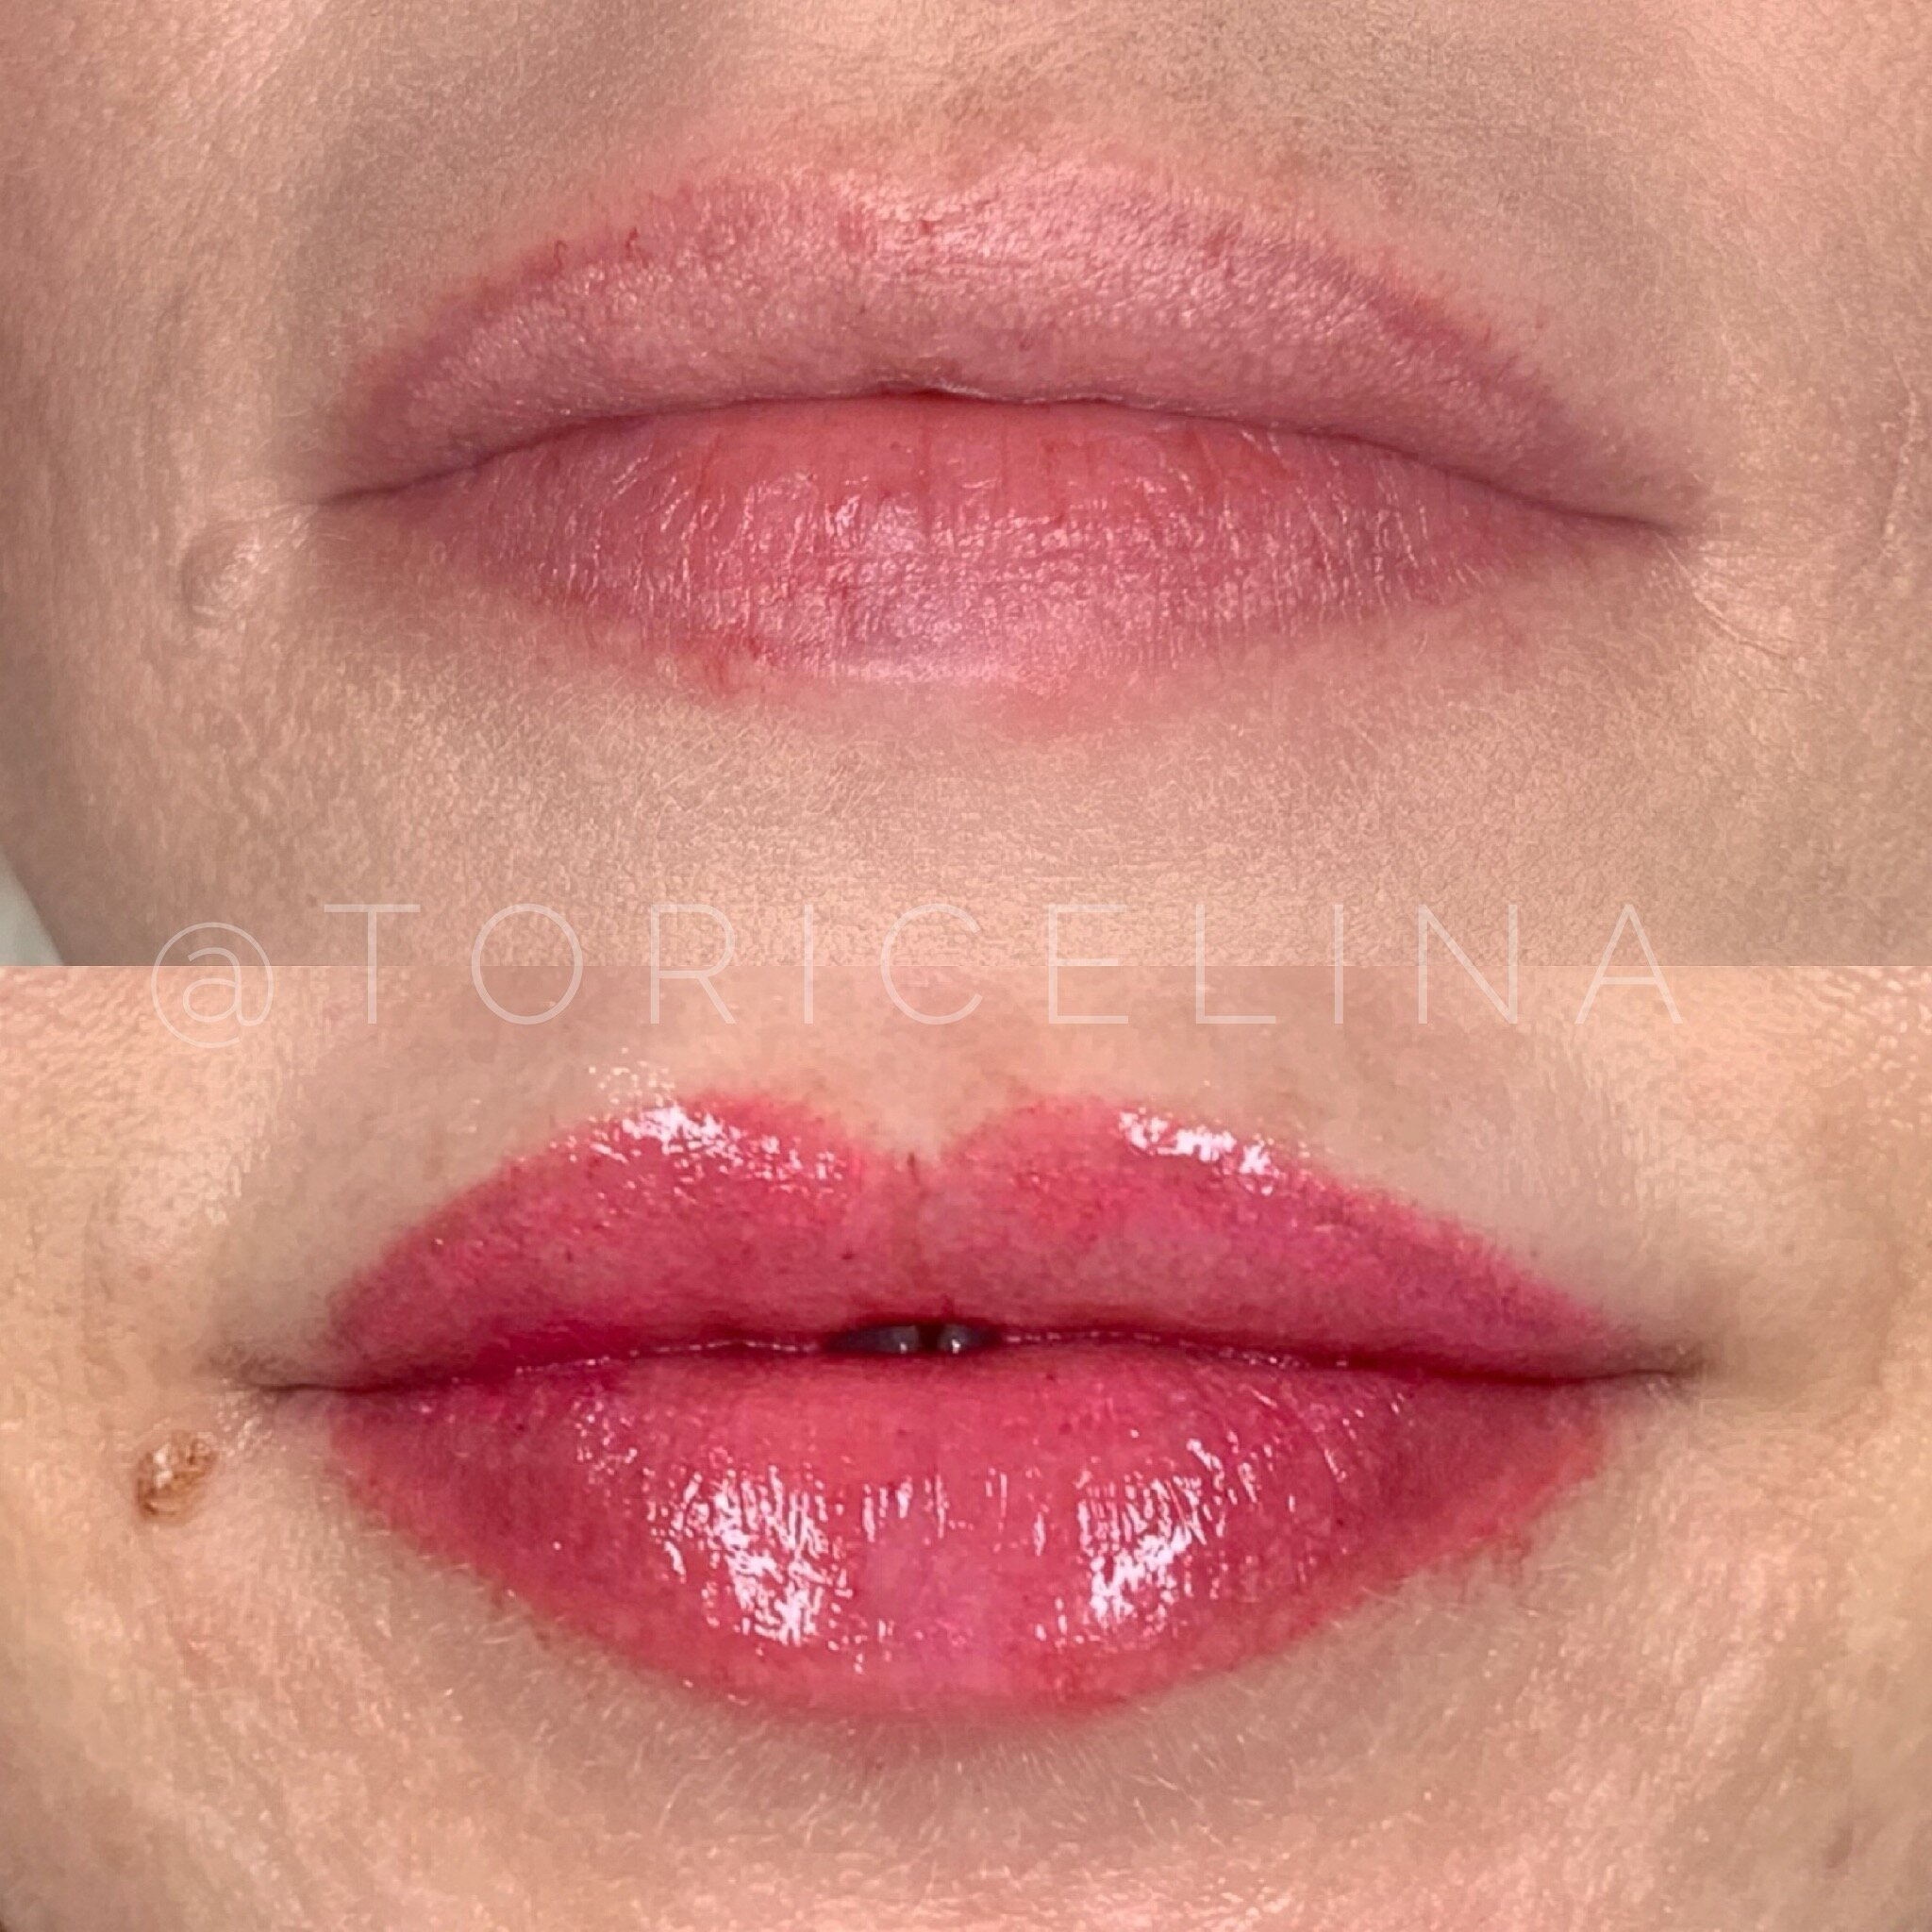 WHAT IS LIPBLUSH? - Lip blush it a form of cosmetic tattooing to enhance your natural lip color, shape and definition to create the illusion of a fuller lip. This is NOT a lipstick look.